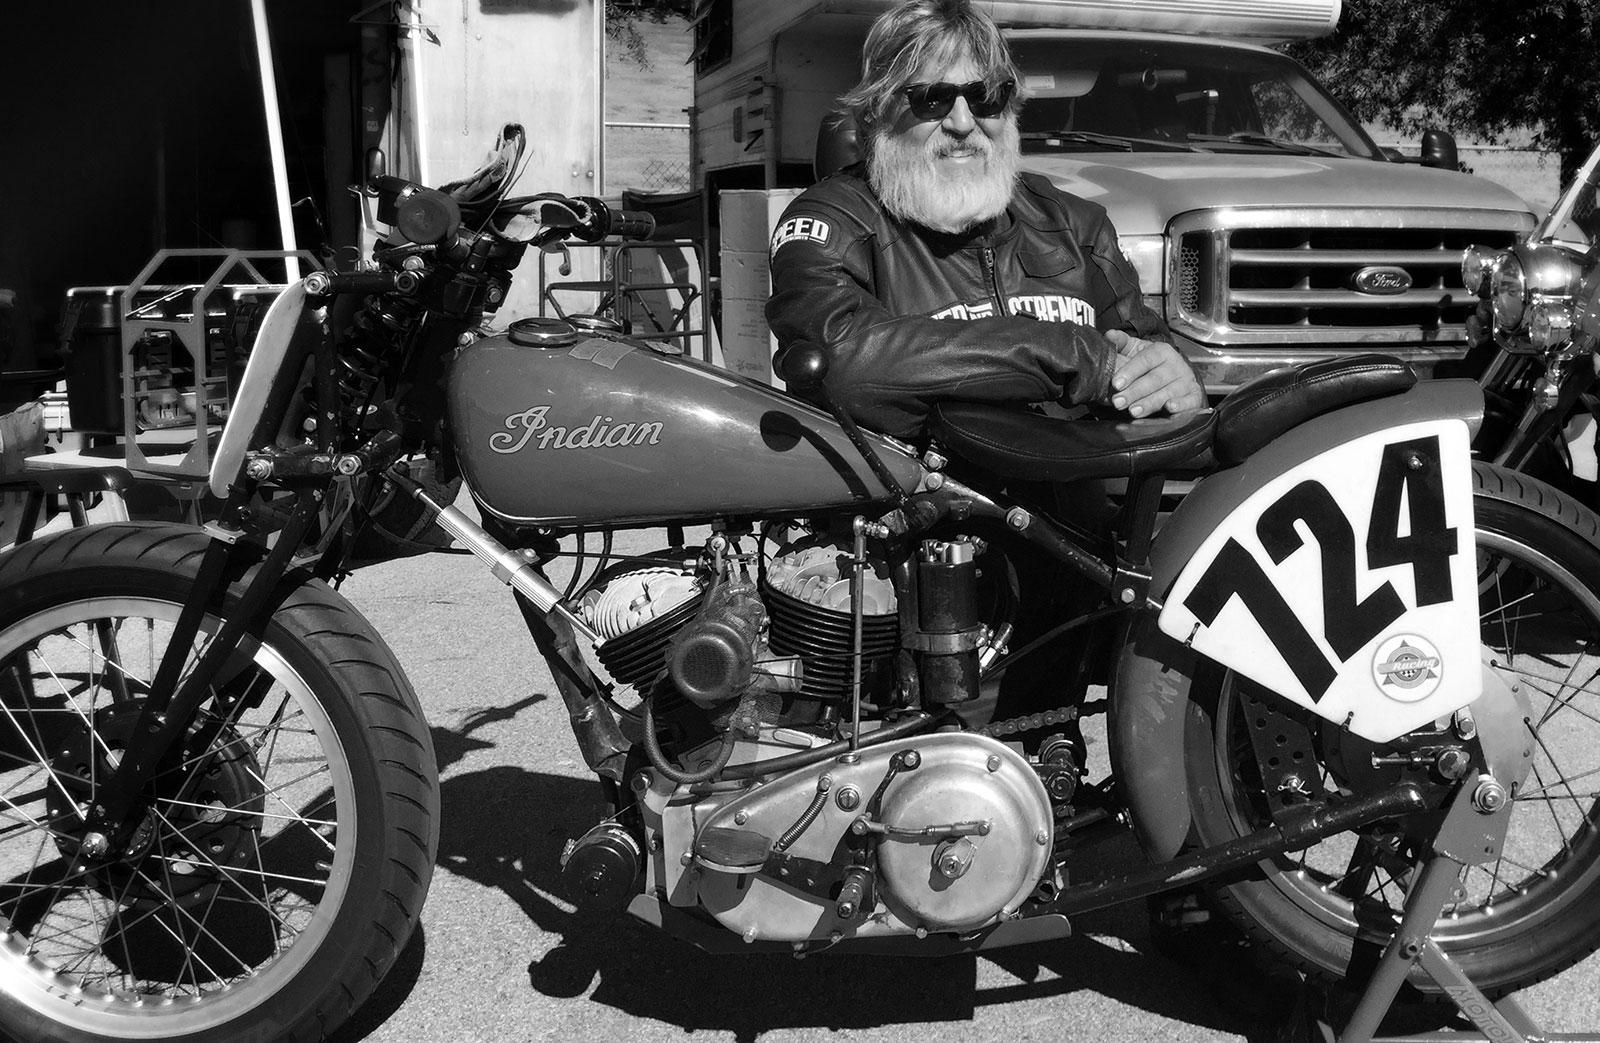 Scott Olofson poses with indian motorcycle